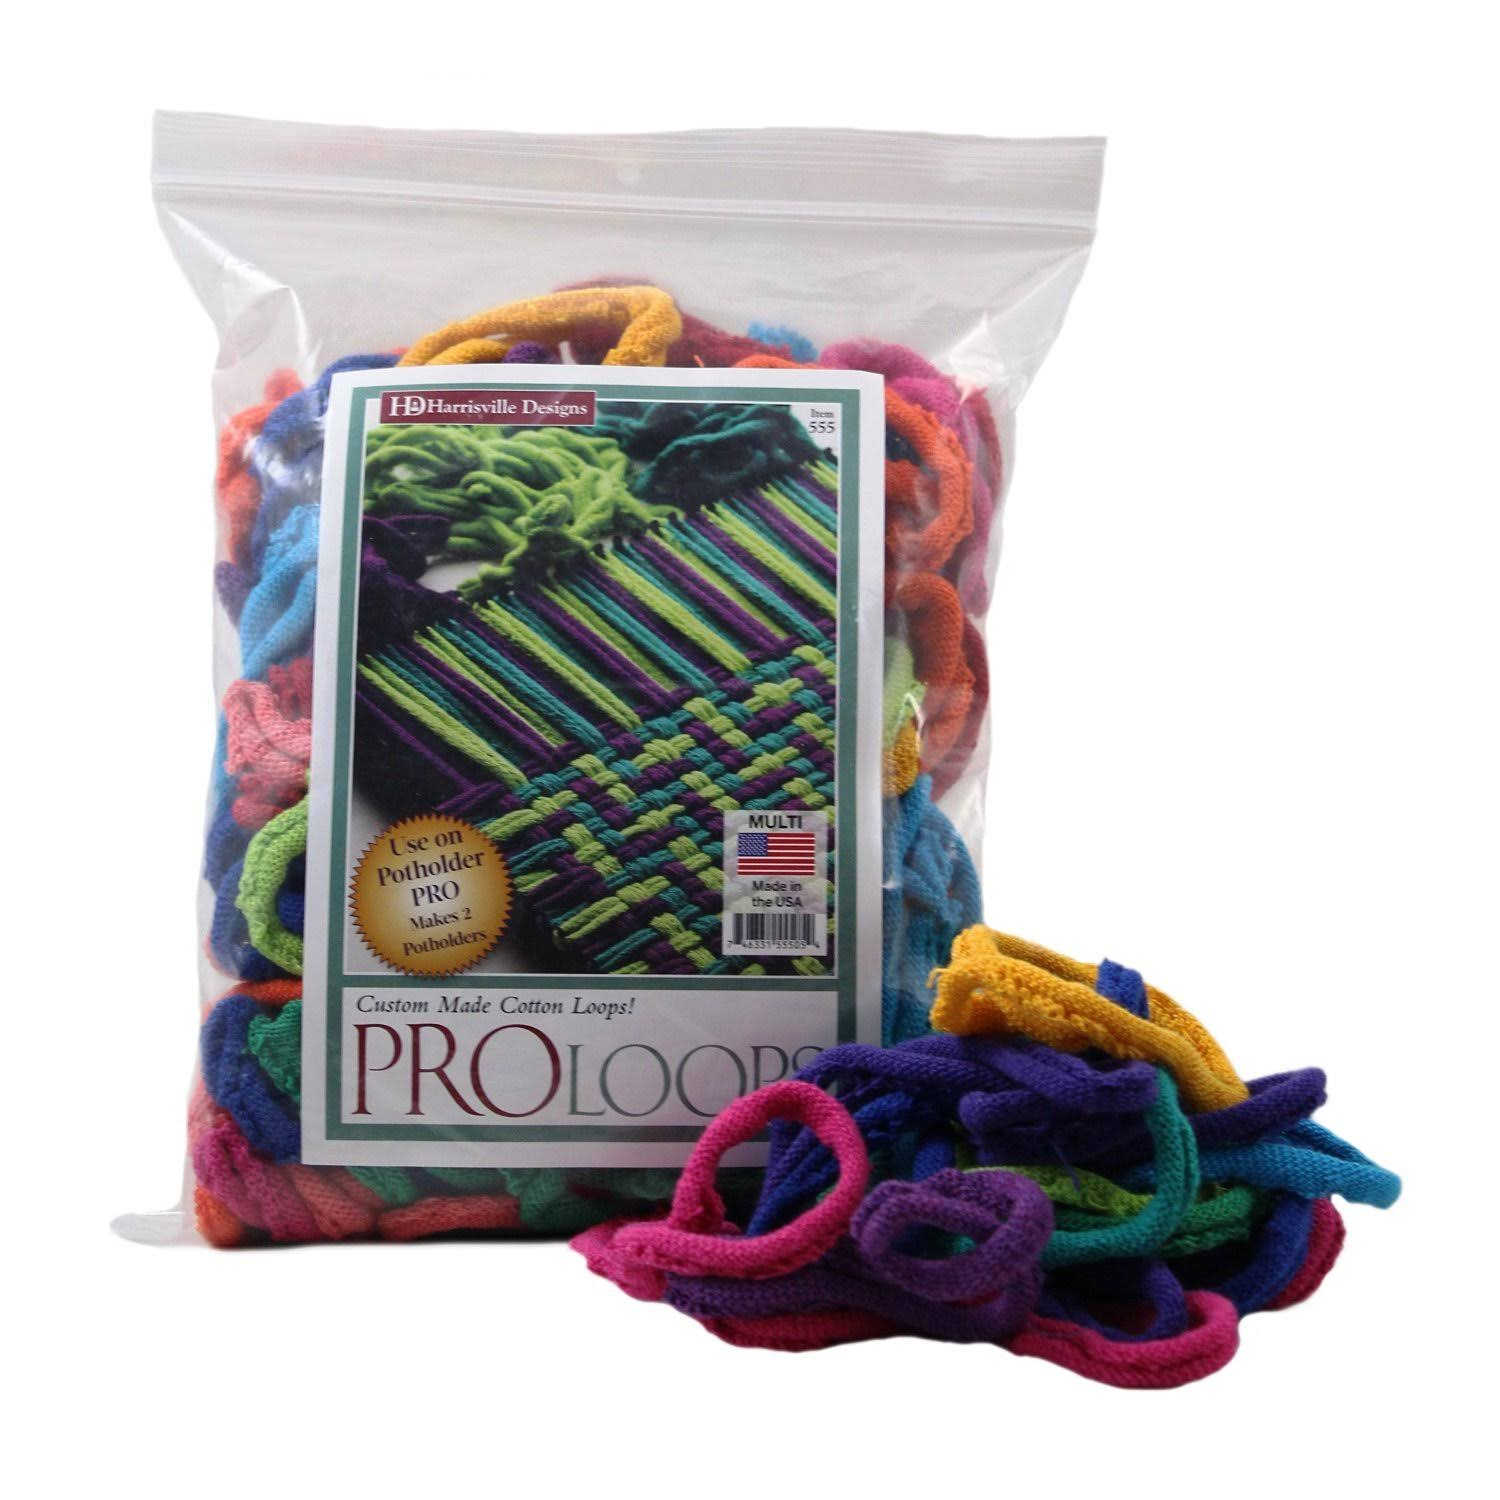 Harrisville Designs Cotton Pro Loops Kit